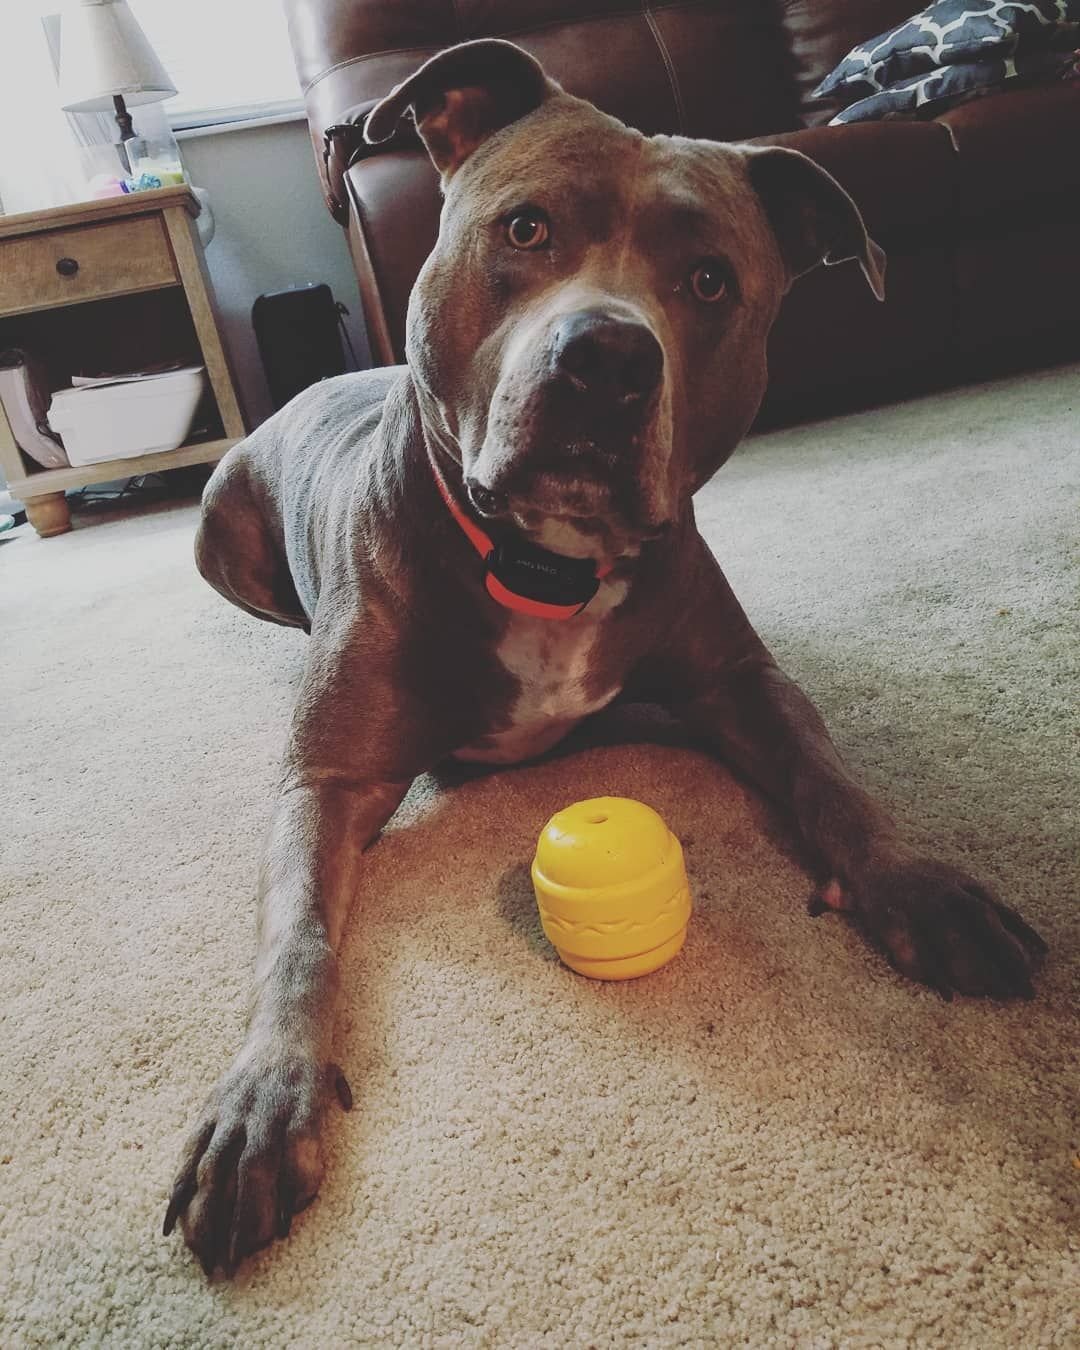 Mom Will You Just Let Me Chew On My New Toy Kearstinashley Bullymake Com Diesel Pitbullsofinstagram Dontbullymyb Puppies Dogs And Puppies Pitbull Mom